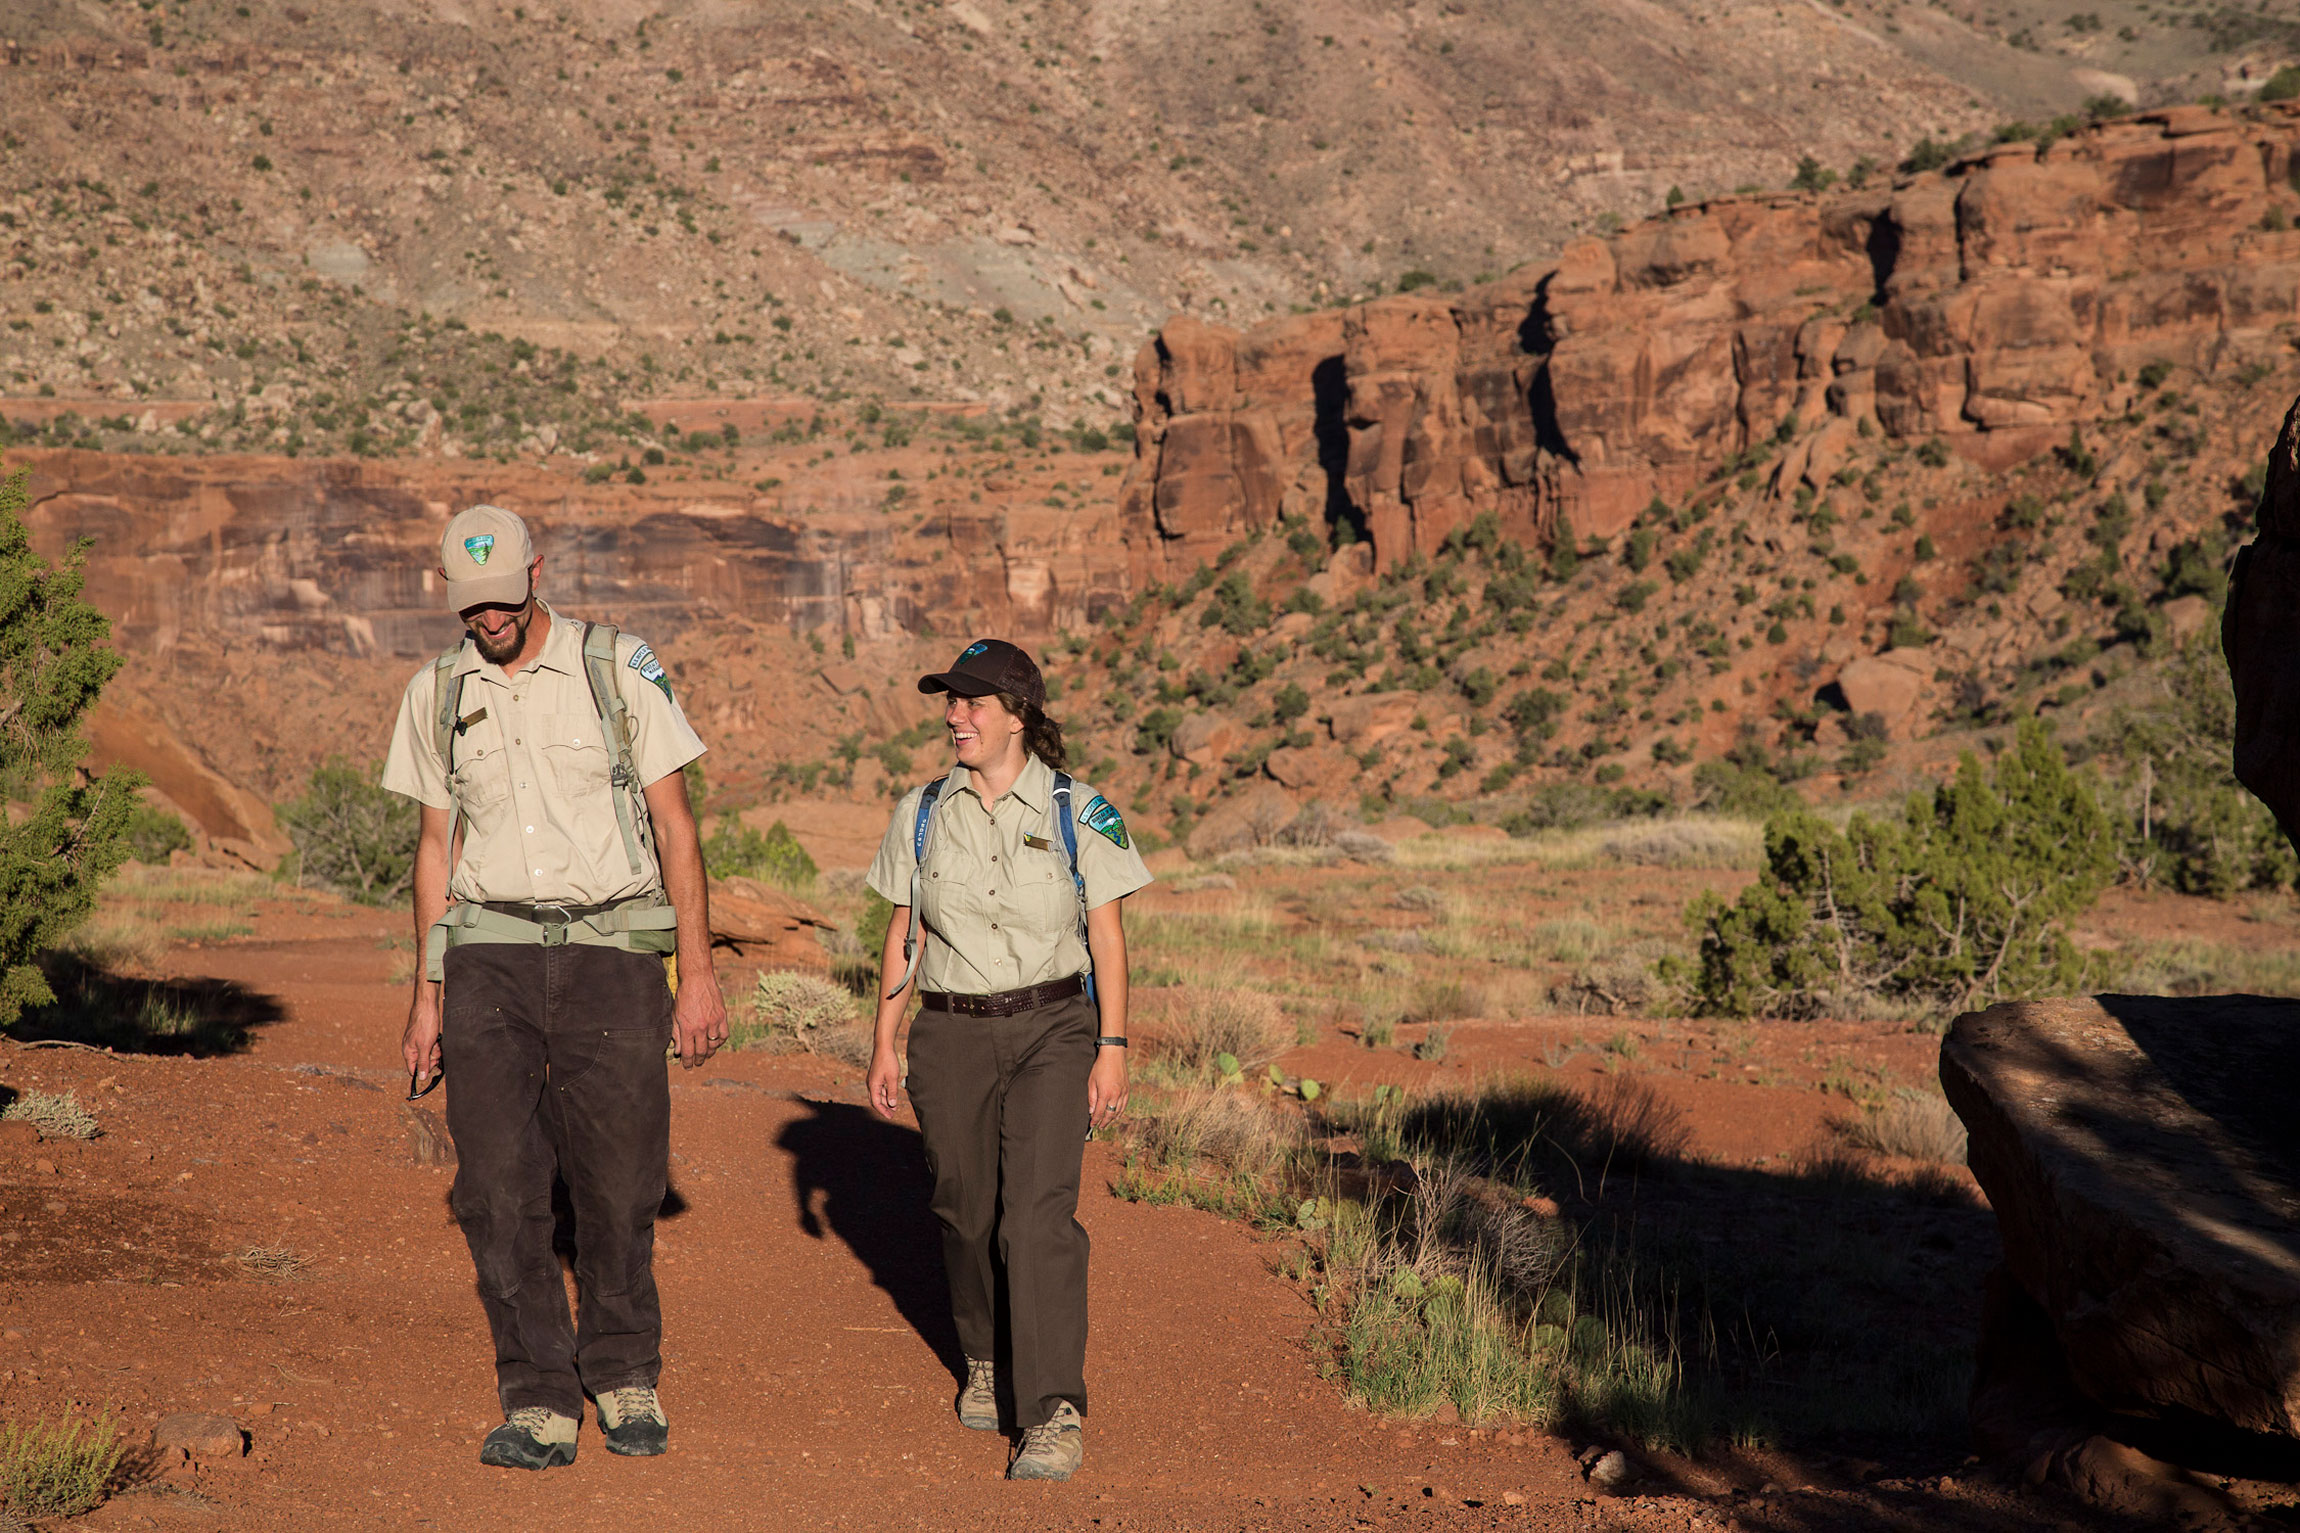 Two Bureau of Land Management rangers walk through theDominguez-Escalante National Conservation Area, which is on Colorado's Western Slope, south of Grand Junction.